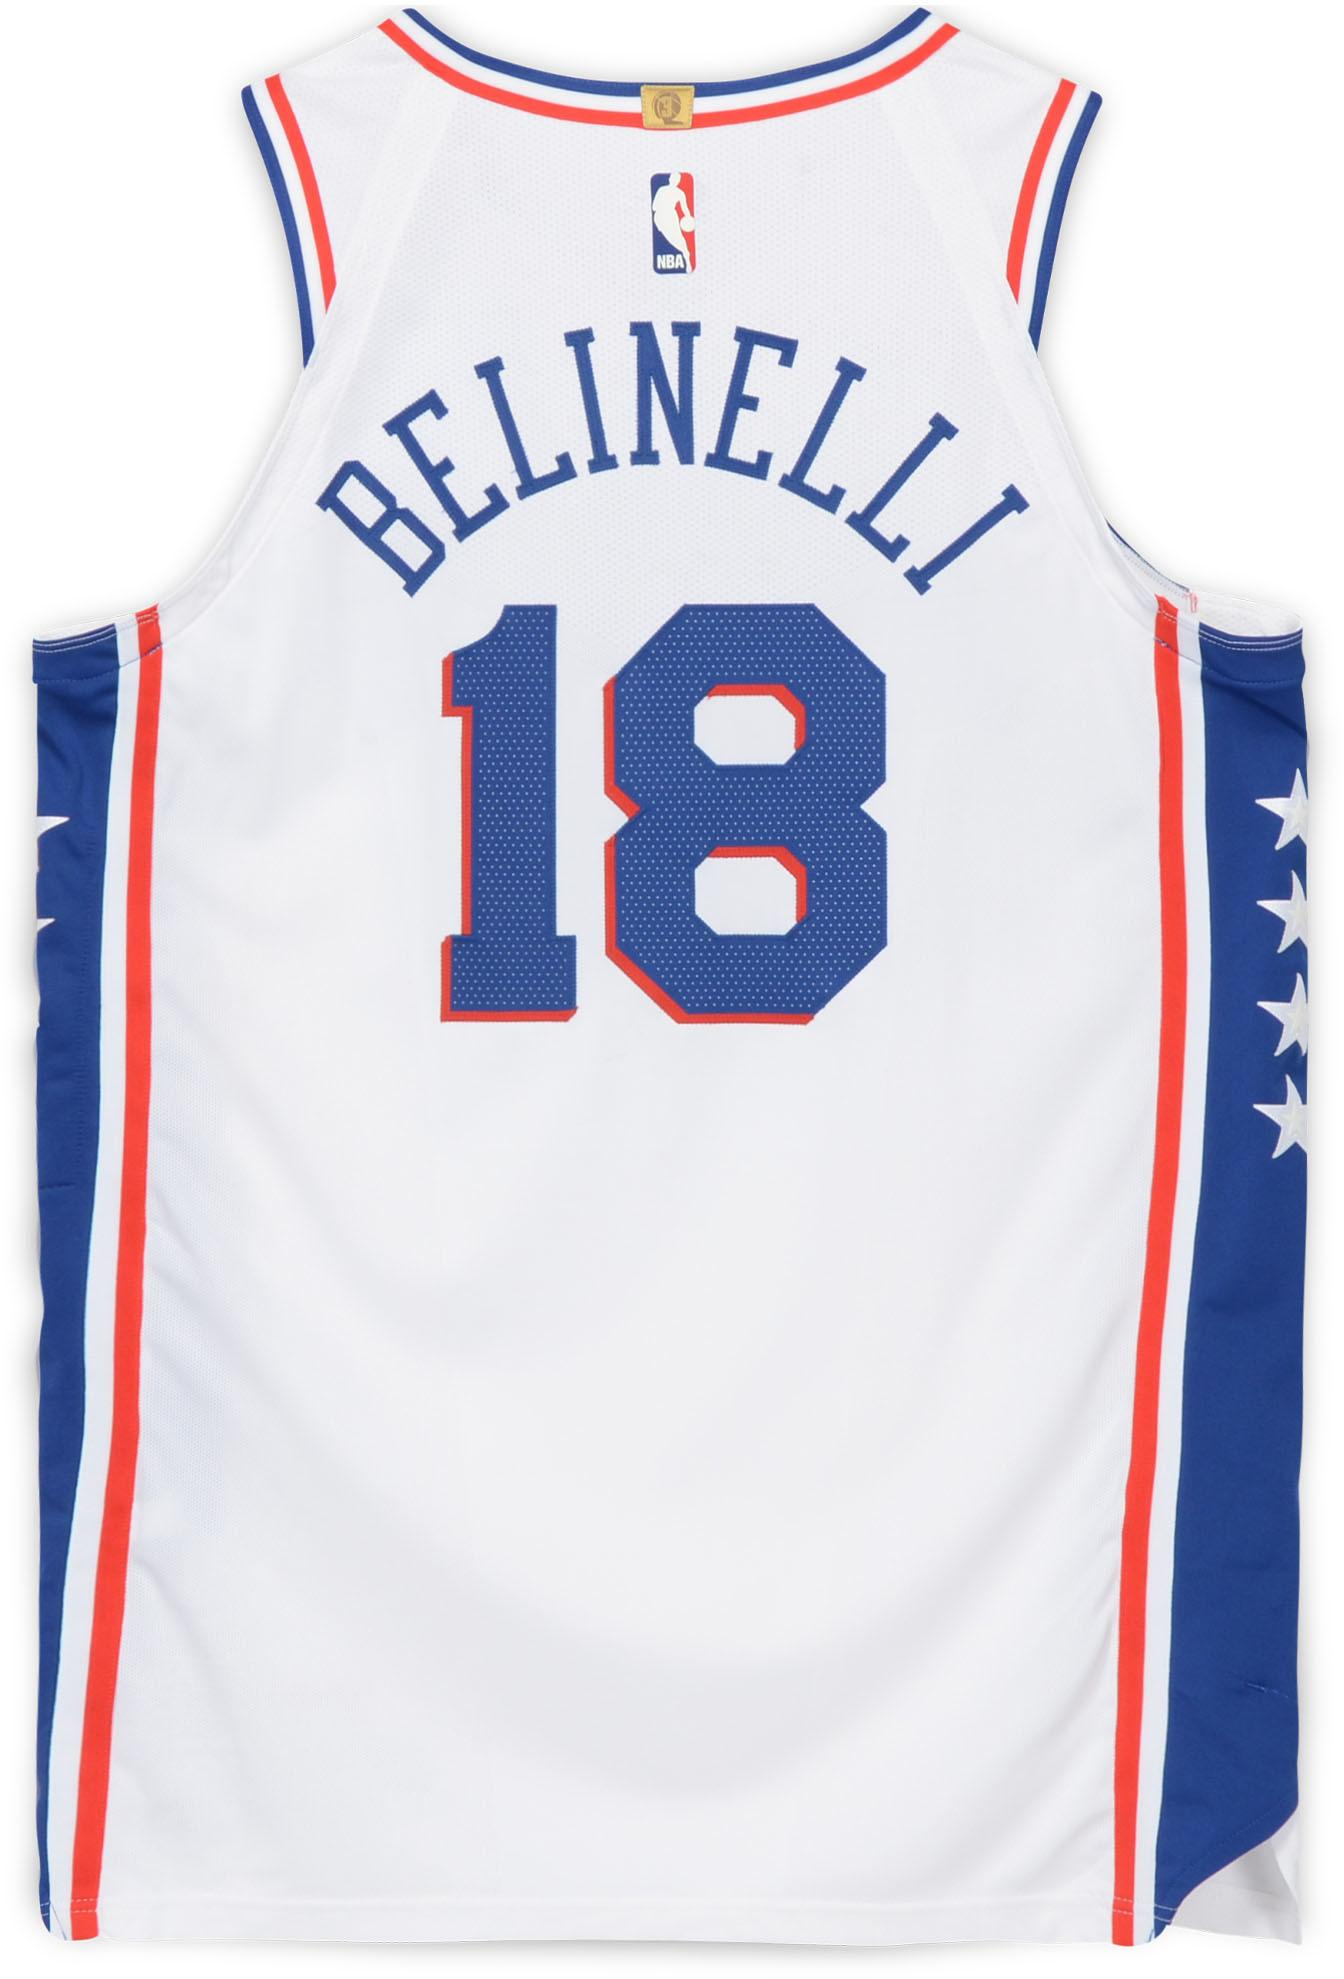 new style 5313e 71b57 Marco Belinelli Philadelphia 76ers Player-Issued #18 White Jersey from the  2018 NBA Playoffs - Size 50+4 - Fanatics Authentic Certified